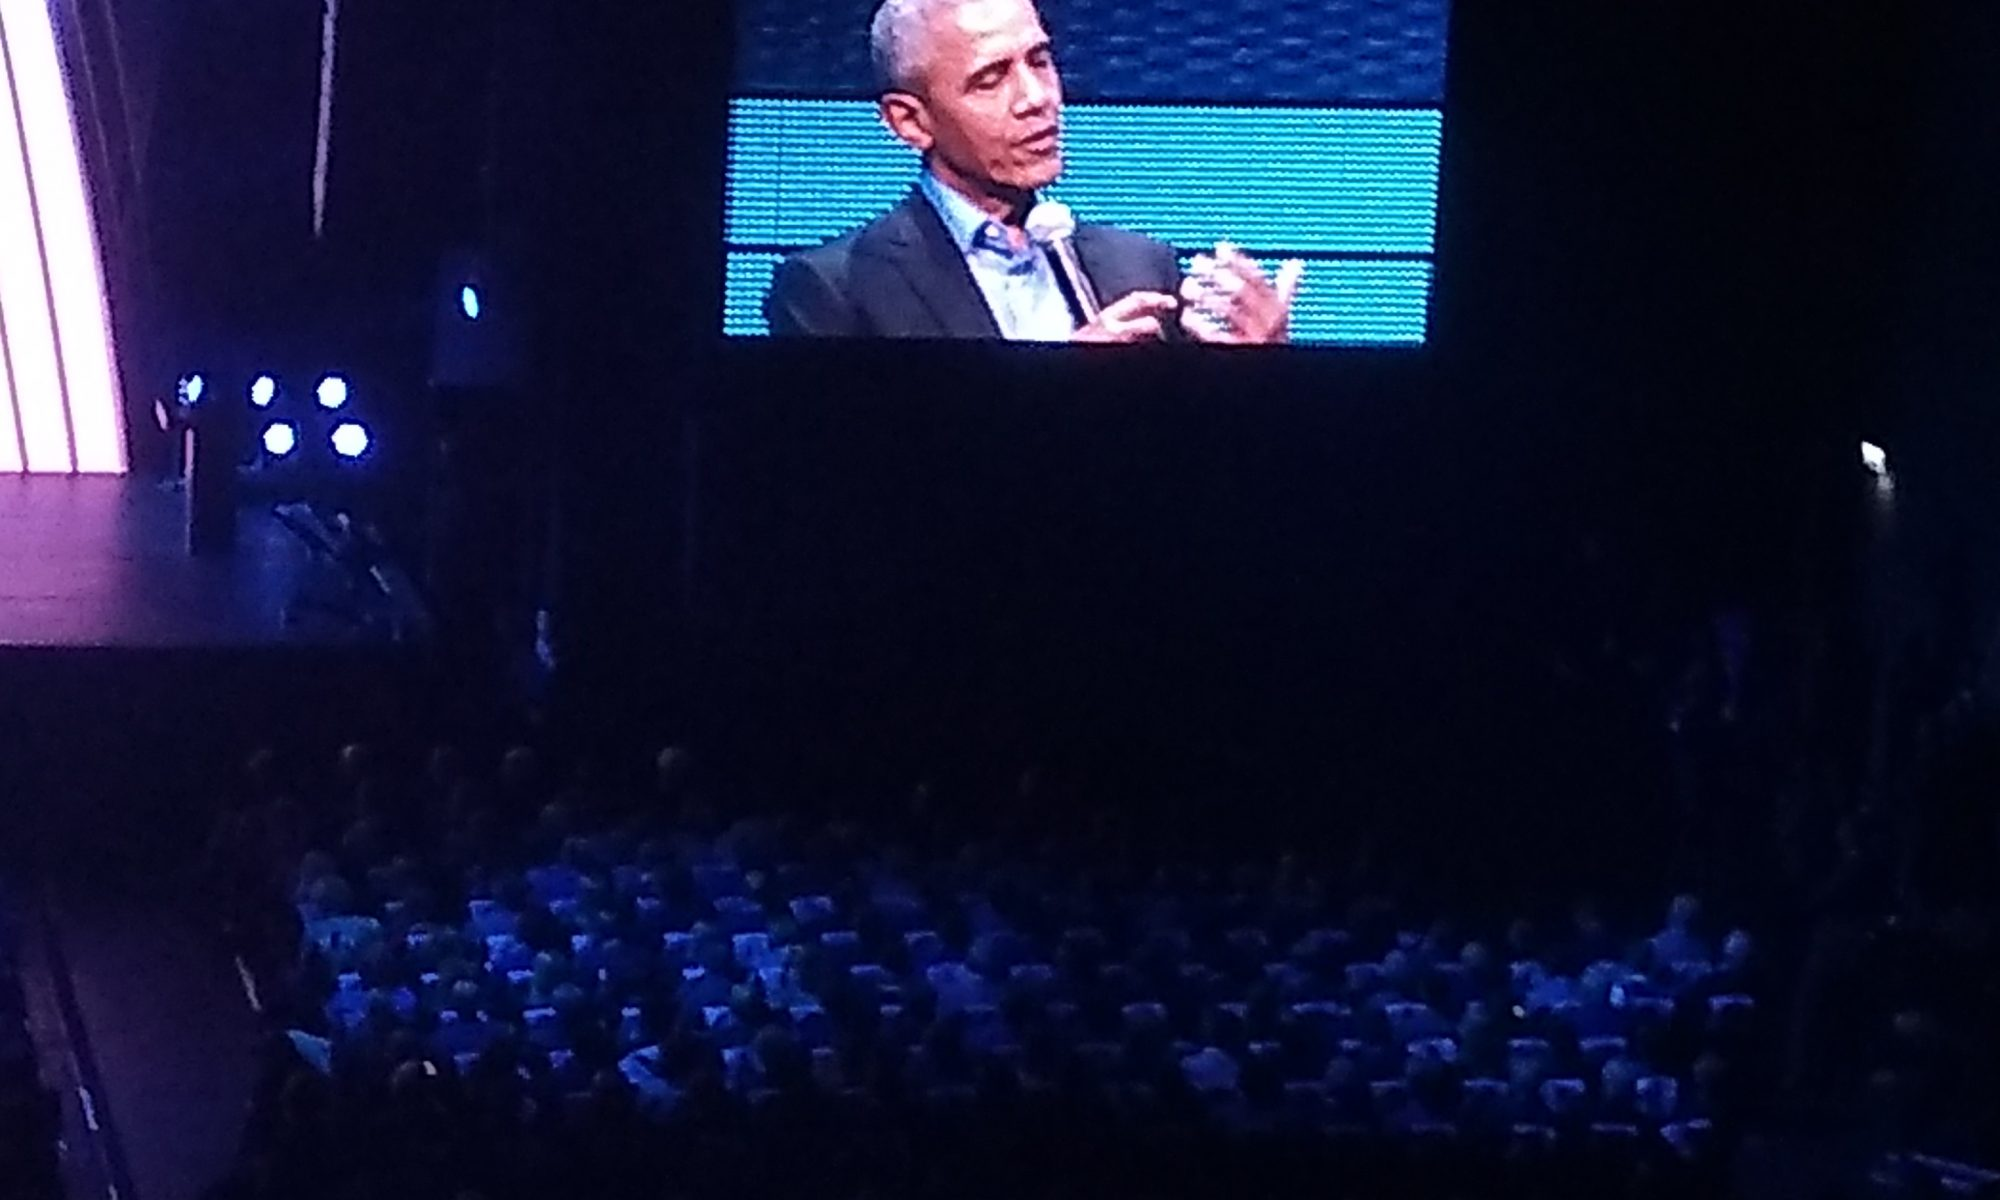 Meeting Obama. From afar.